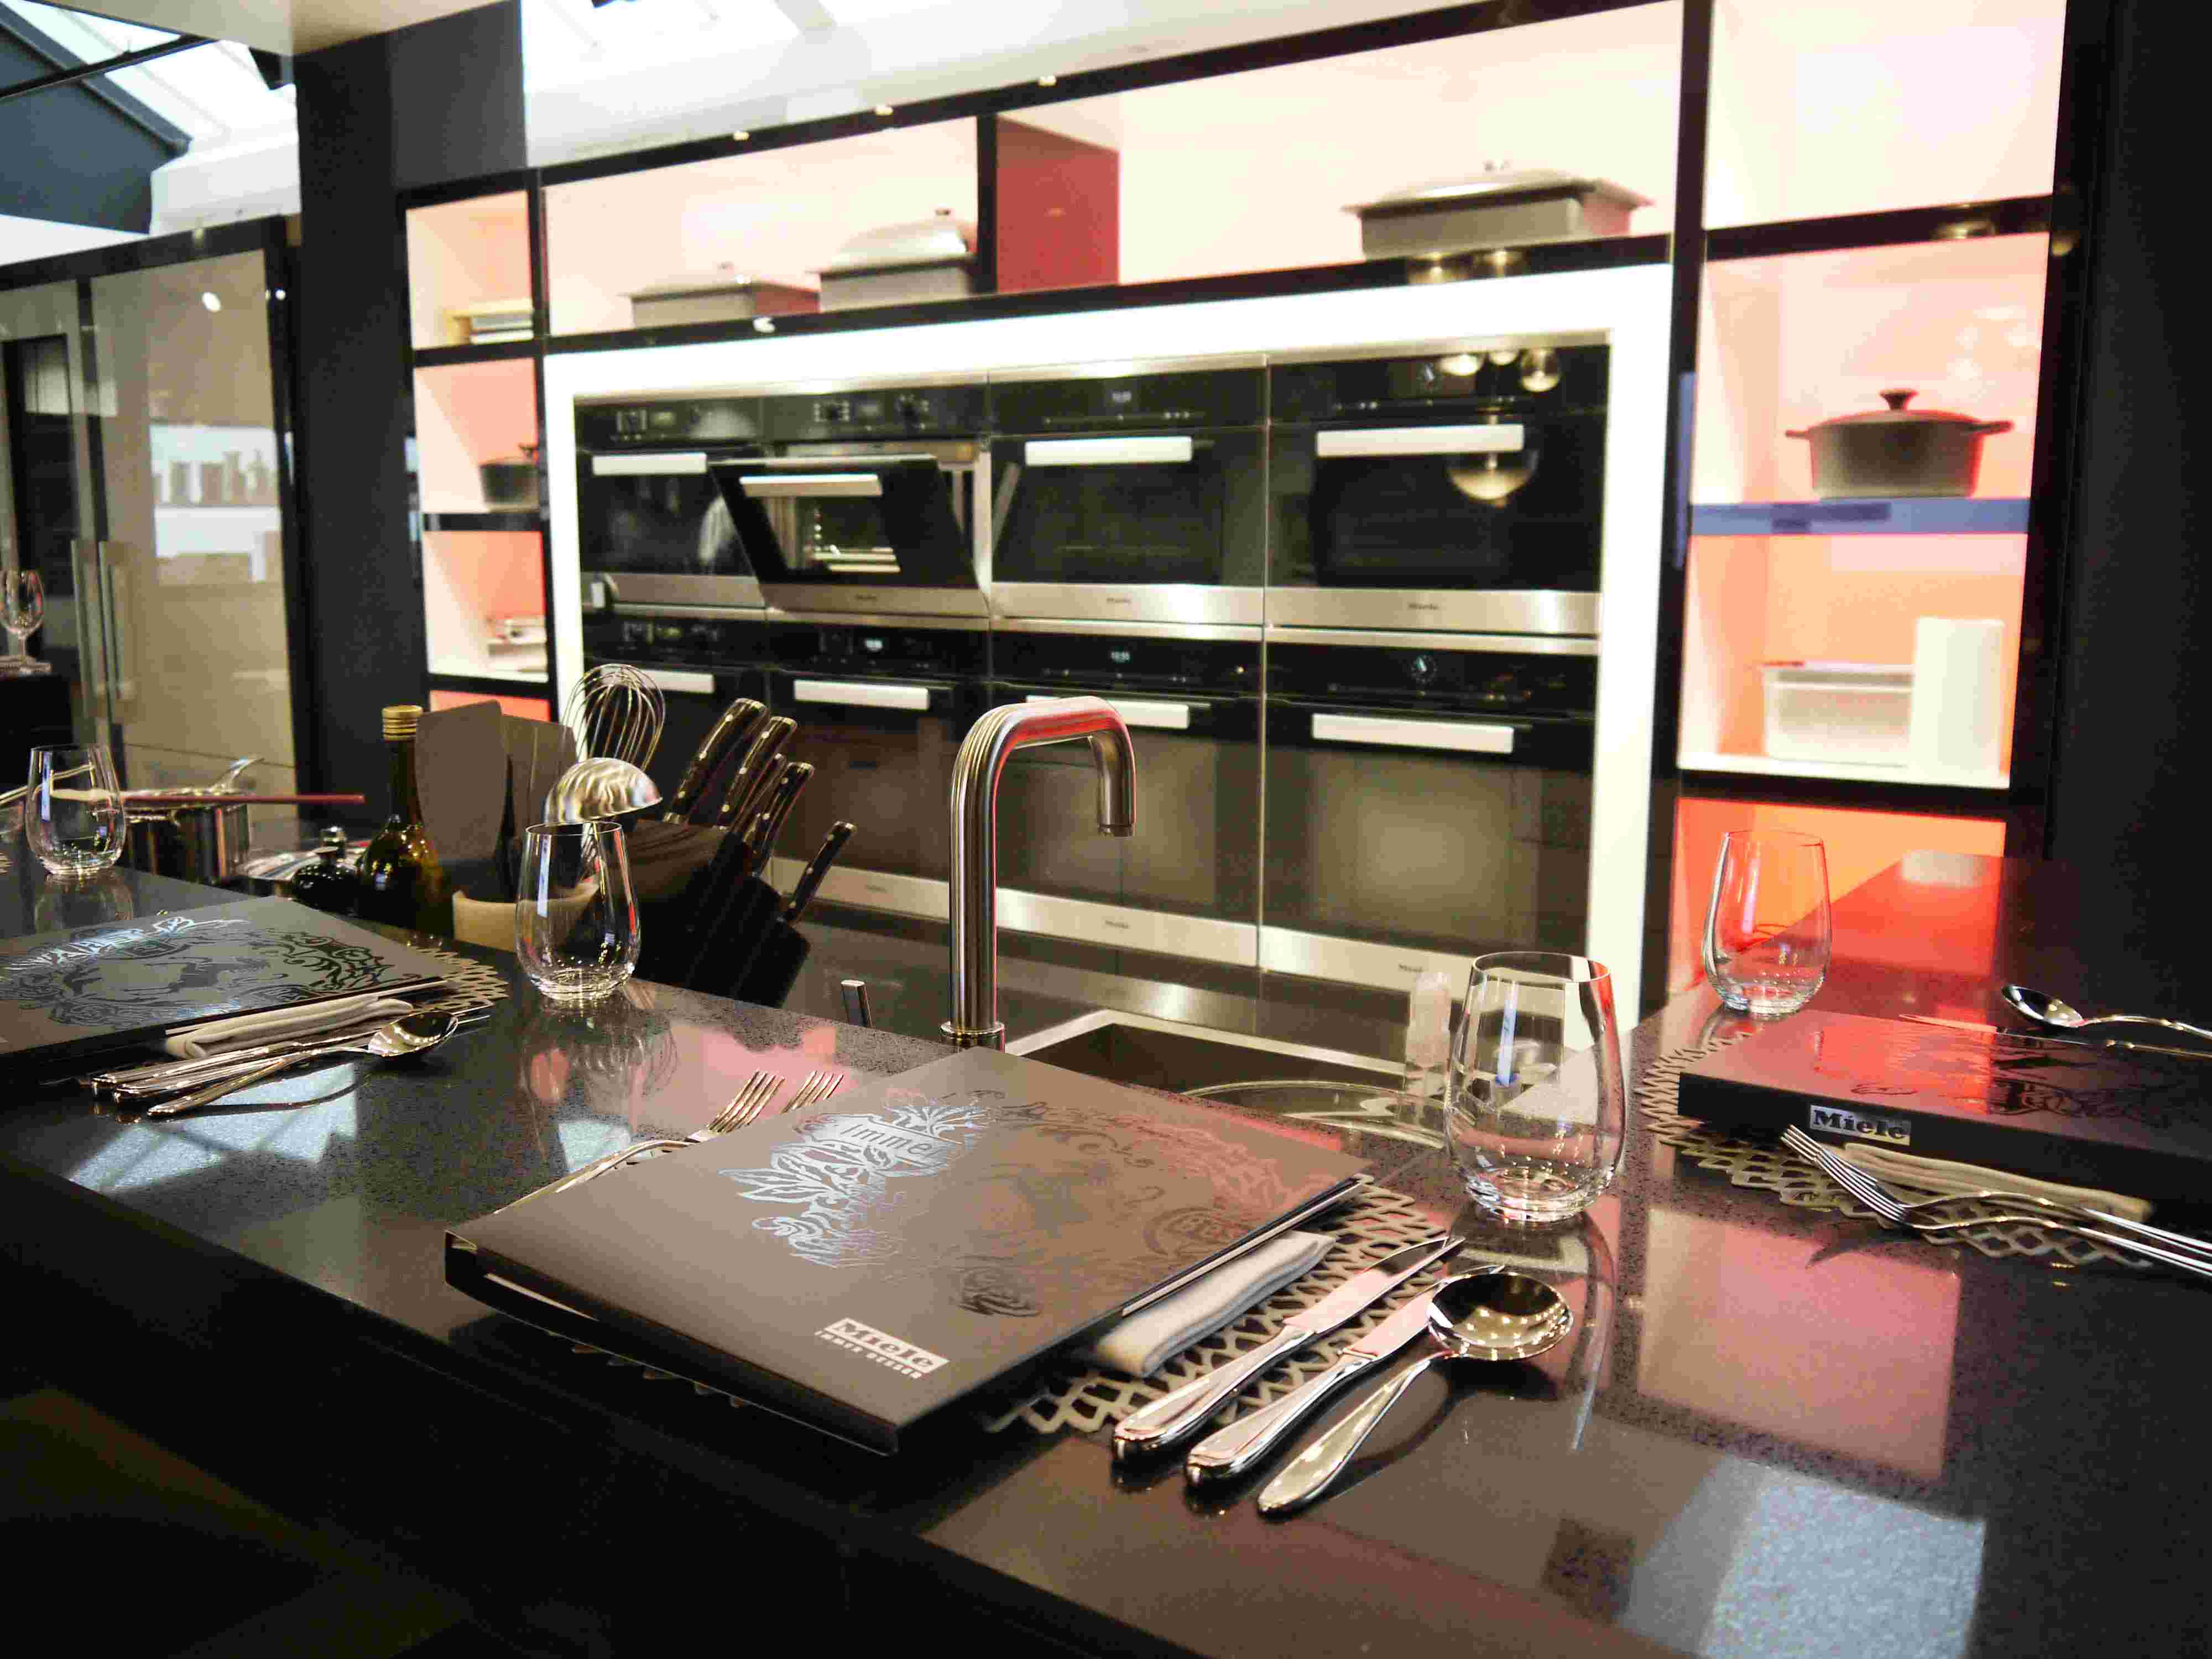 miele-cooking-just-imagine-experience-just-imagine-event-thebeautytype.com-lbloggers-cooking-blogger-lifestyle-restaurant-london-abingdon.jpg